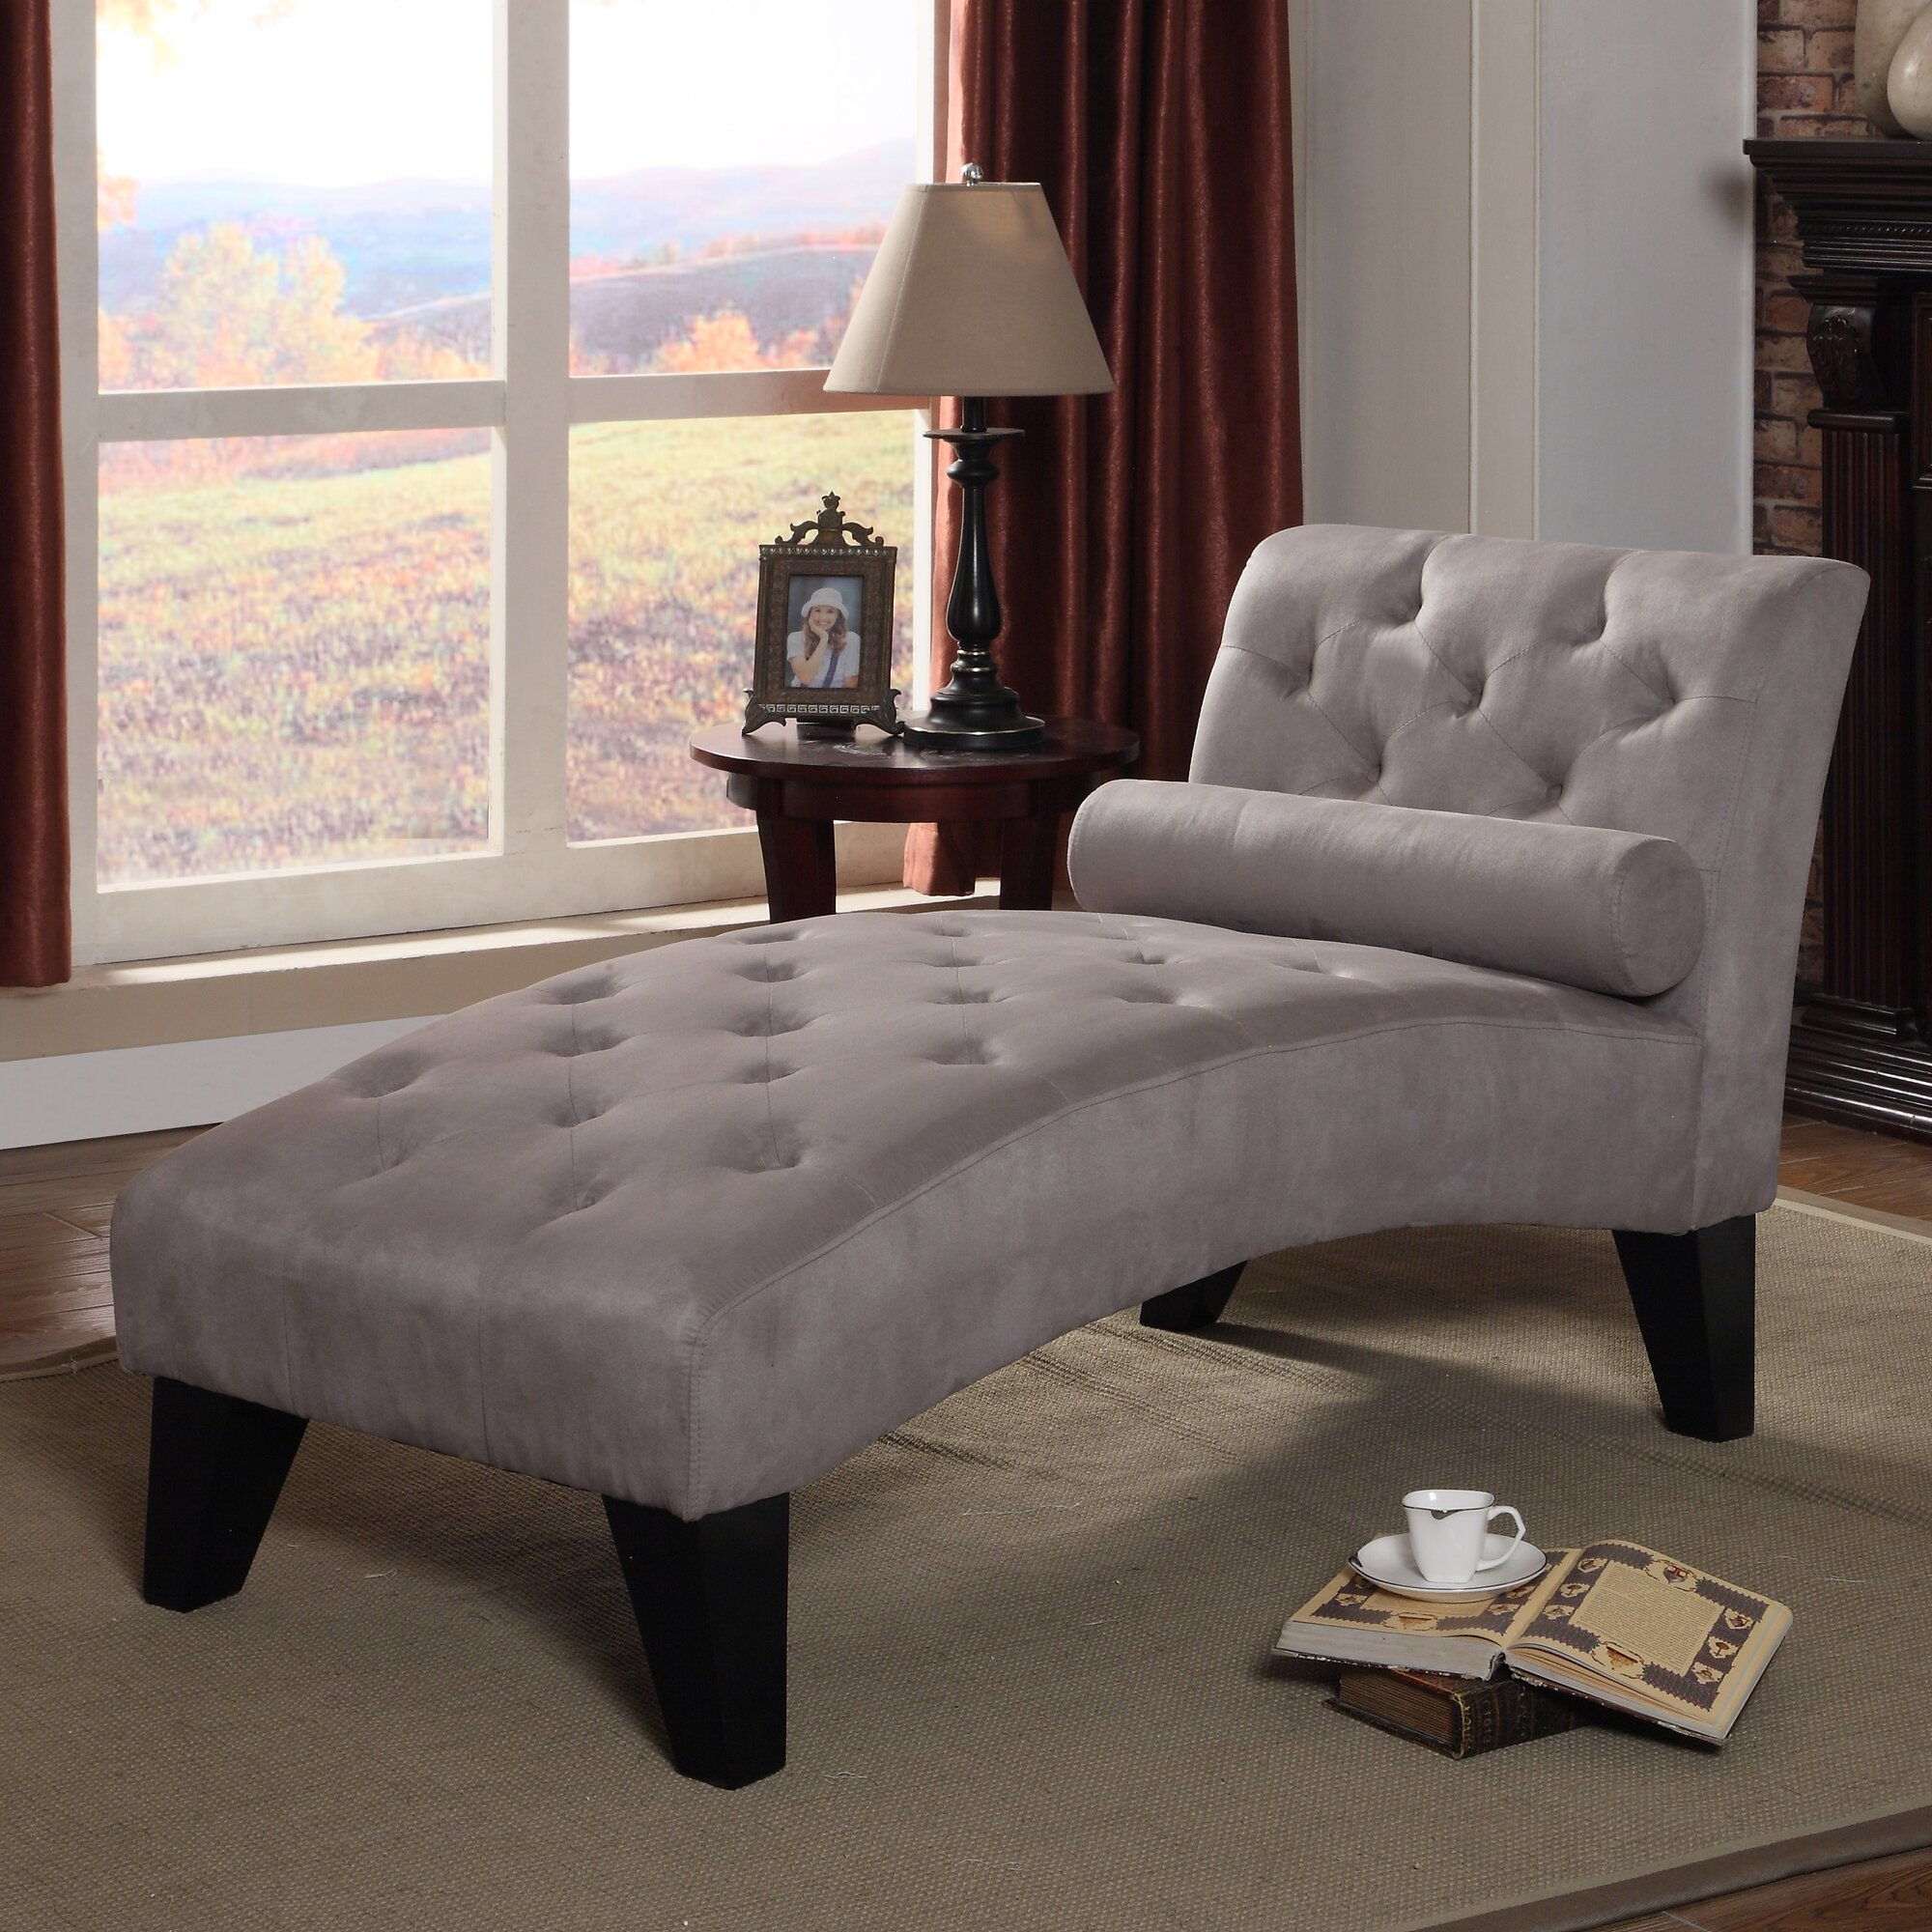 Find The Best Chaise Lounge Chairs Wayfair - Chaise lounge chair indoor